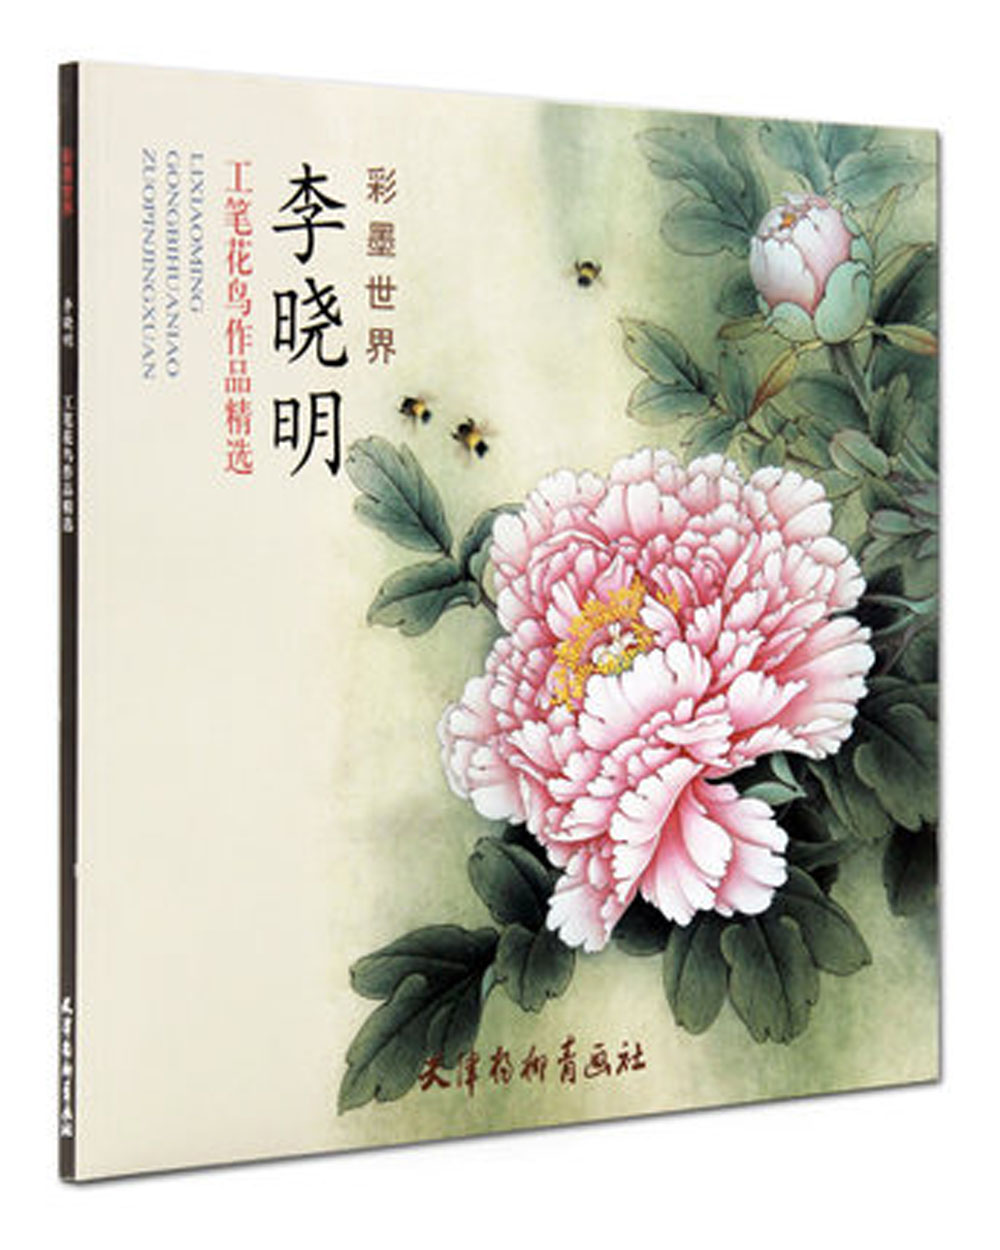 Chinese Flower Painting Art Book by Li Xiaoming Gongbi Peony Lotus Orchid set 8 pc painting fine line gongbi sumi e brushes 8 pc gongbi painting books